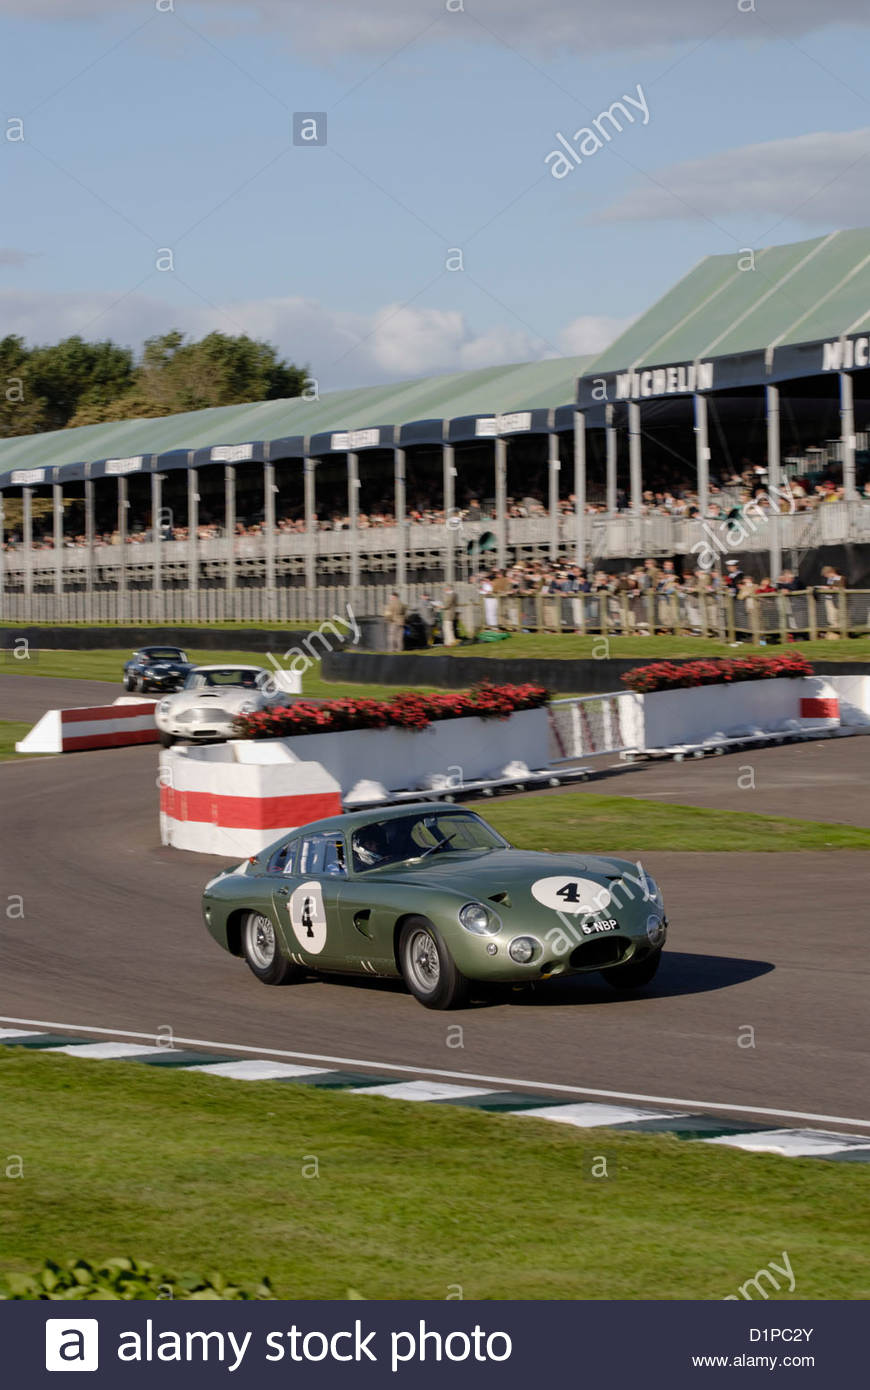 Aston Martin DB4 GT at the Goodwood Revival Meeting 2012 in the RAC TT Celebration race - Stock Image